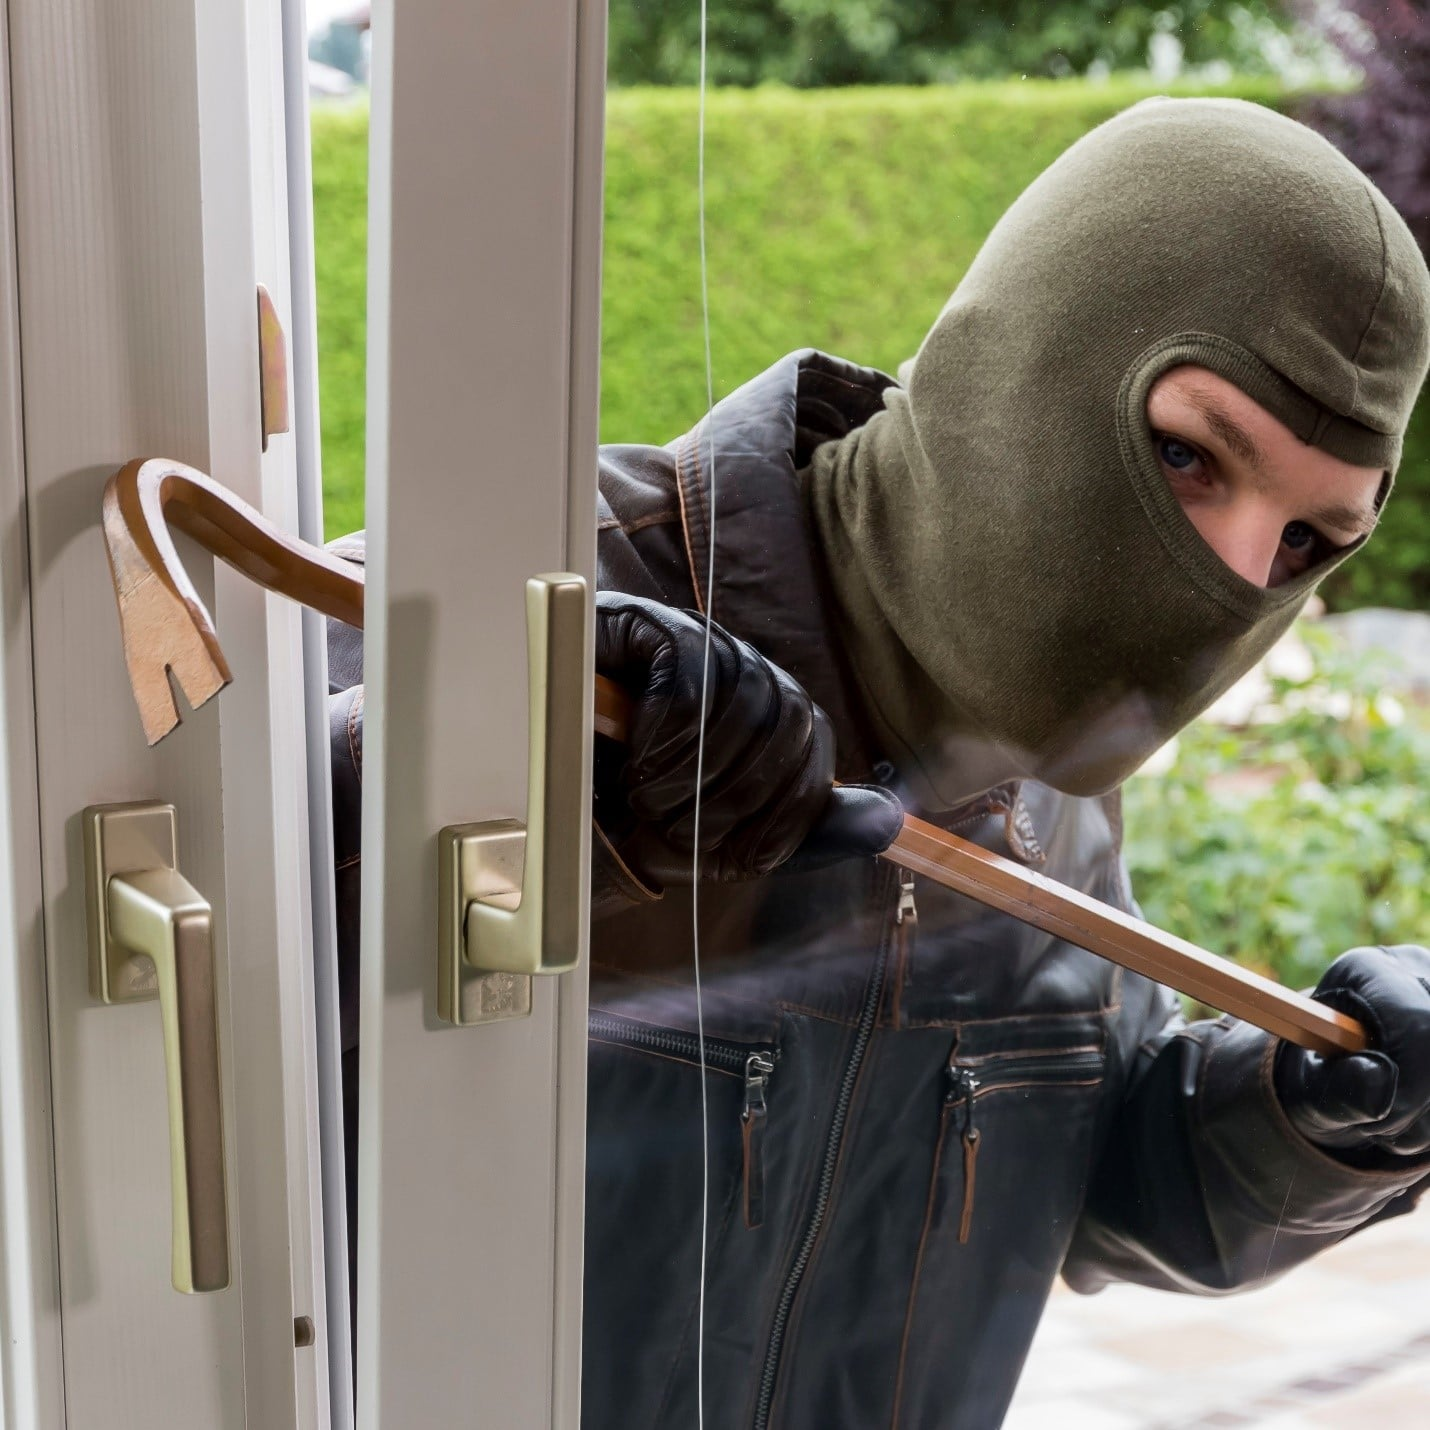 man breaking in to home with a crowbar